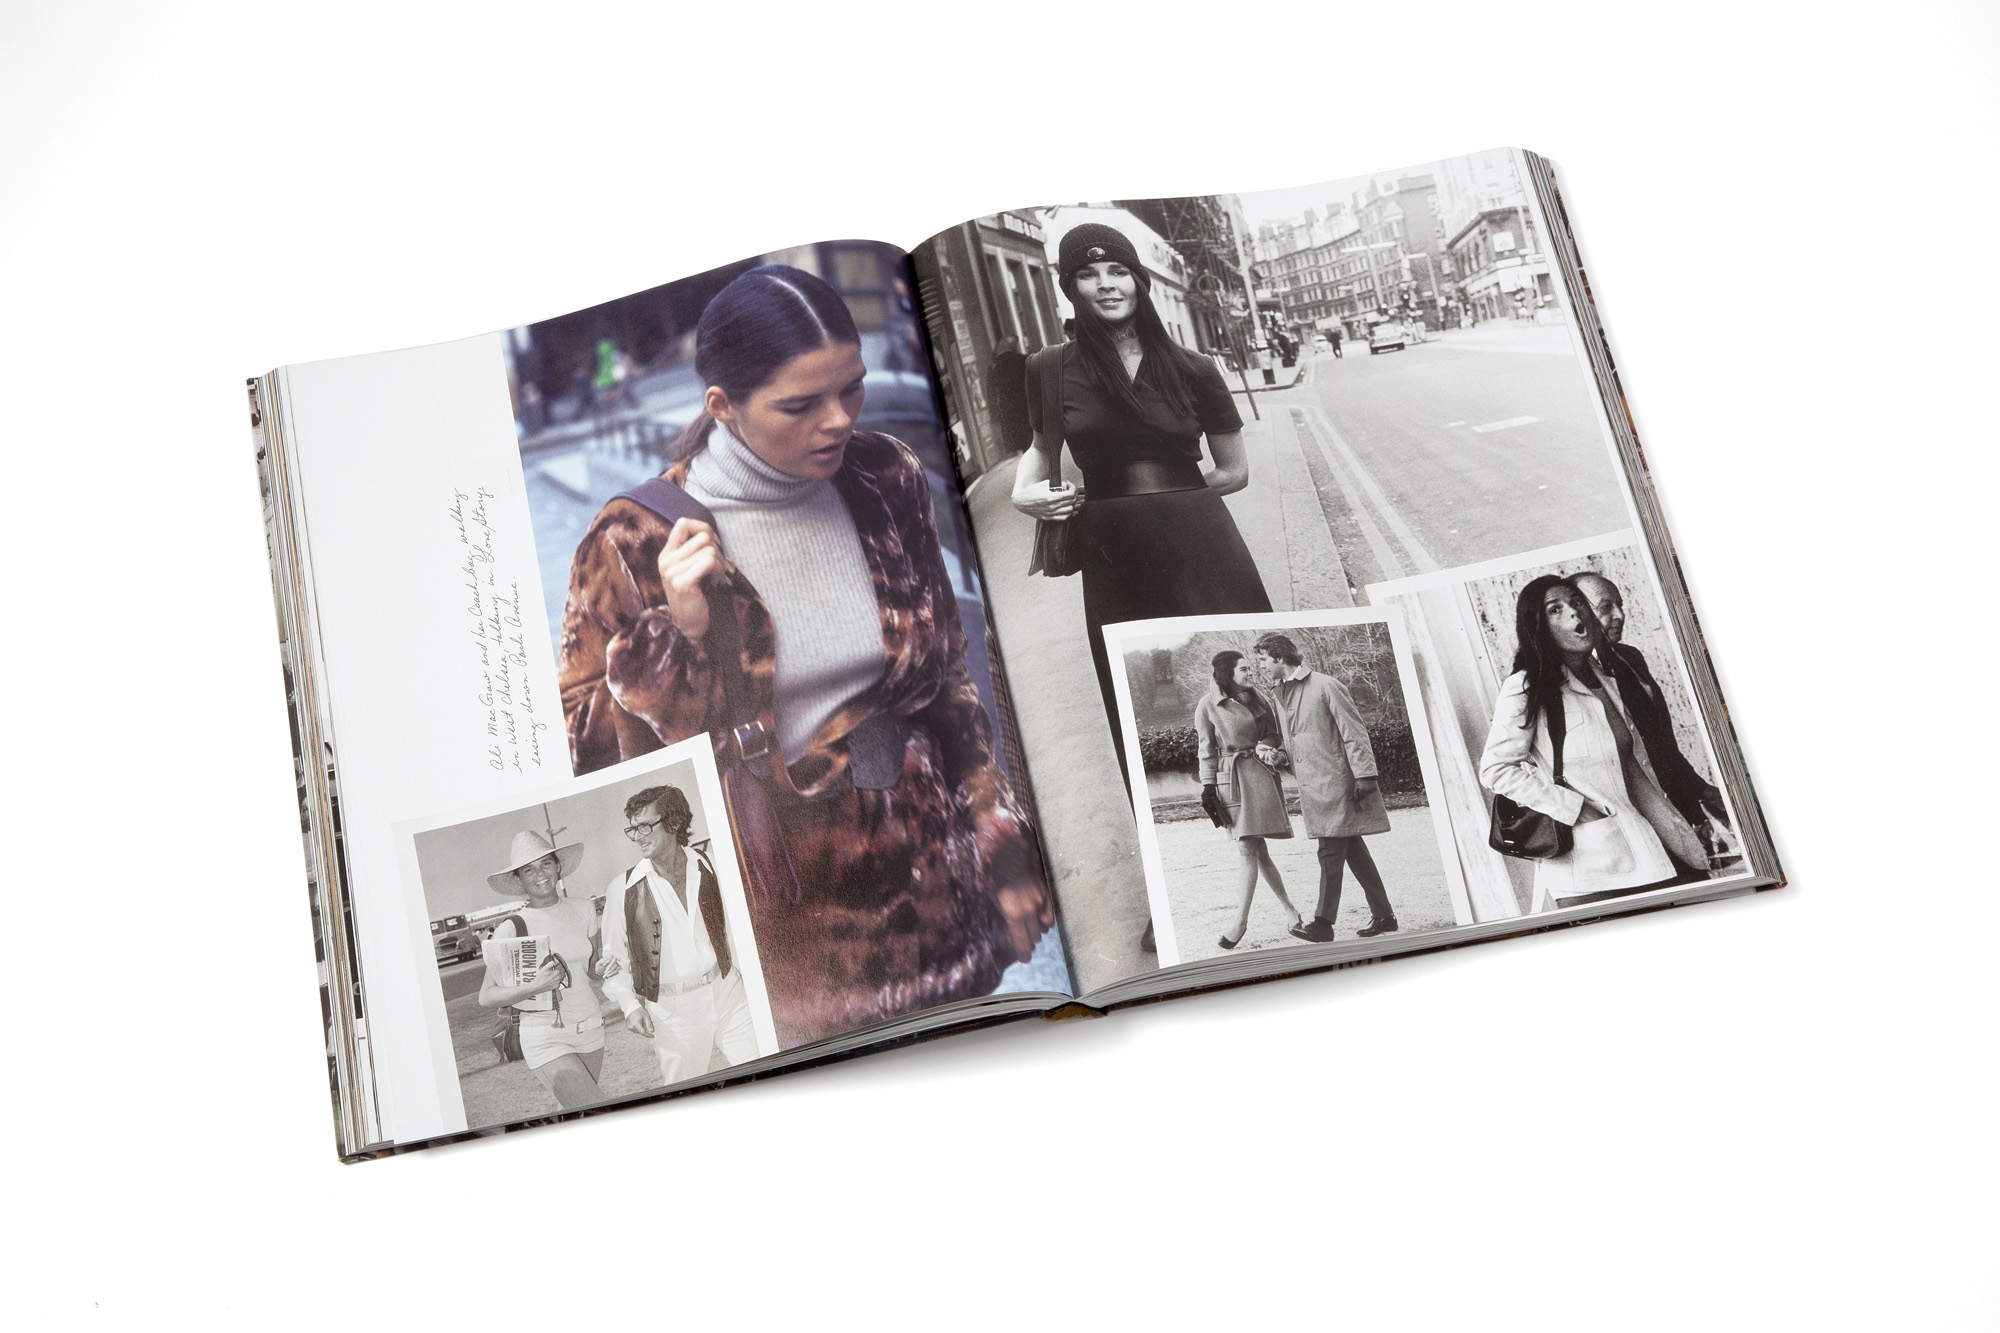 coach-75-years-cool-book-the-impression-006